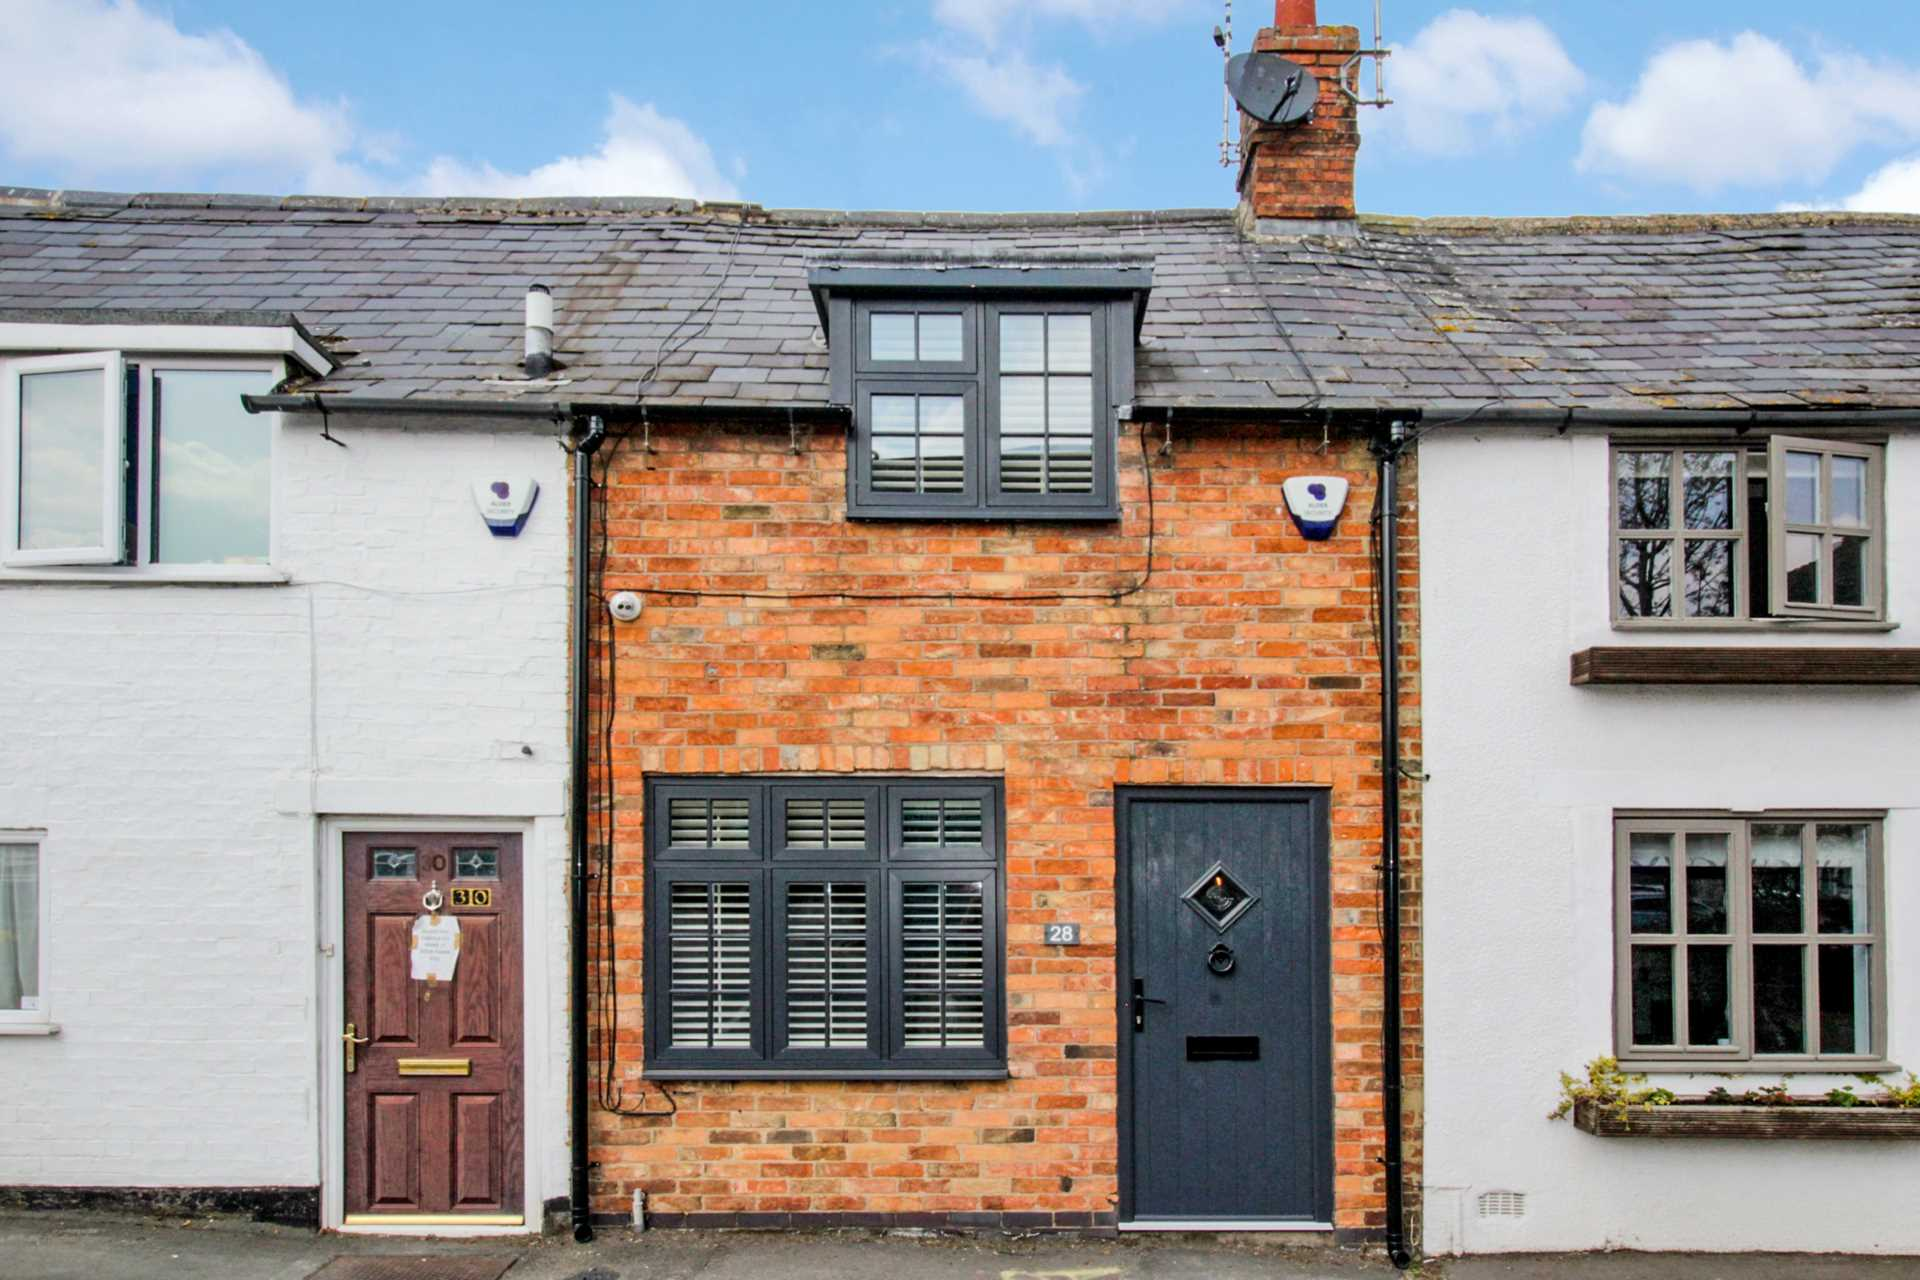 Iris Cottage, Telegraph Street, Shipston on Stour, CV36 4DA, Image 1